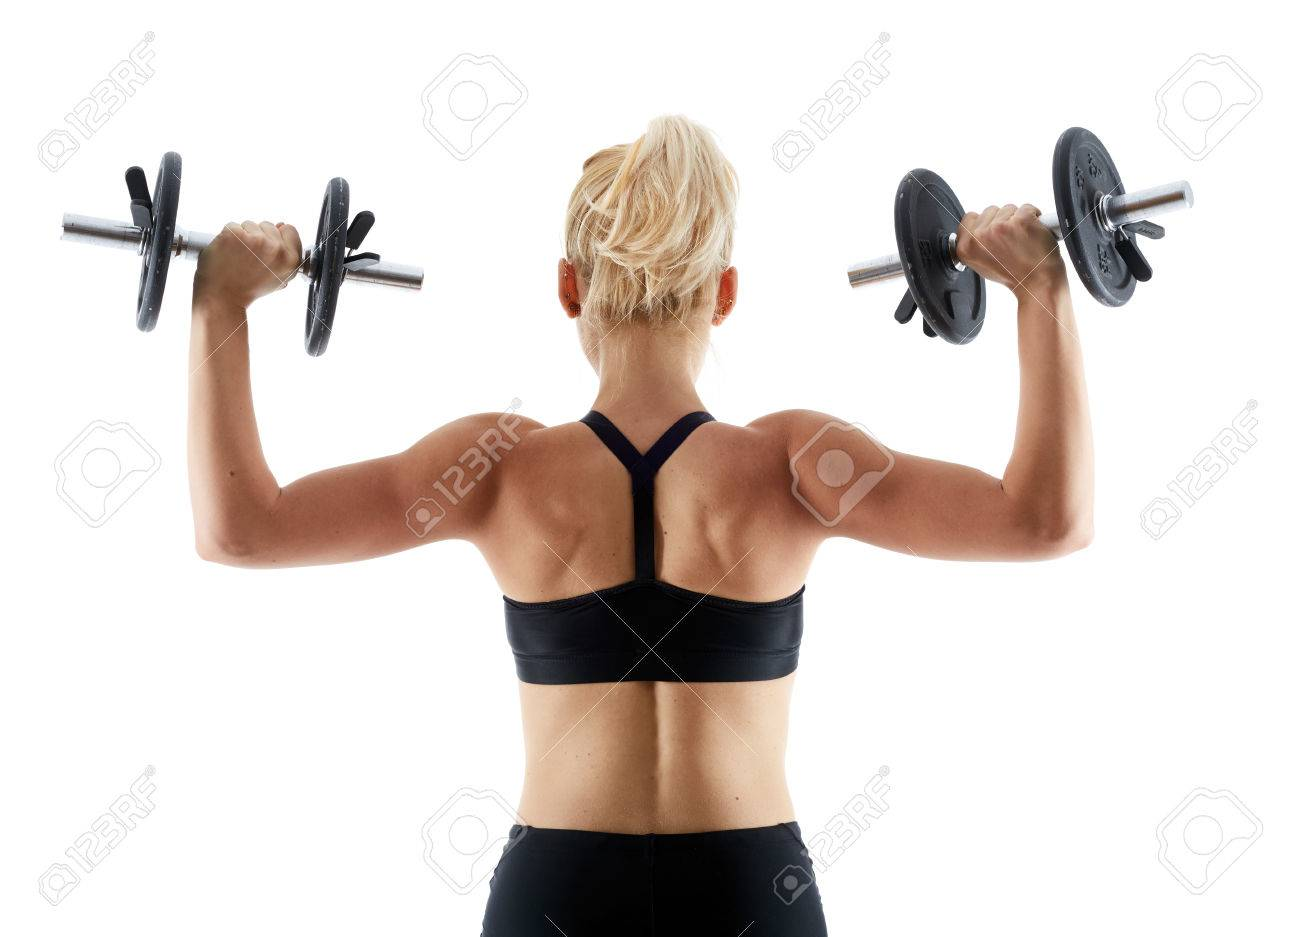 Young Woman Doing Shoulder Workout With Dumbbells Isolated On